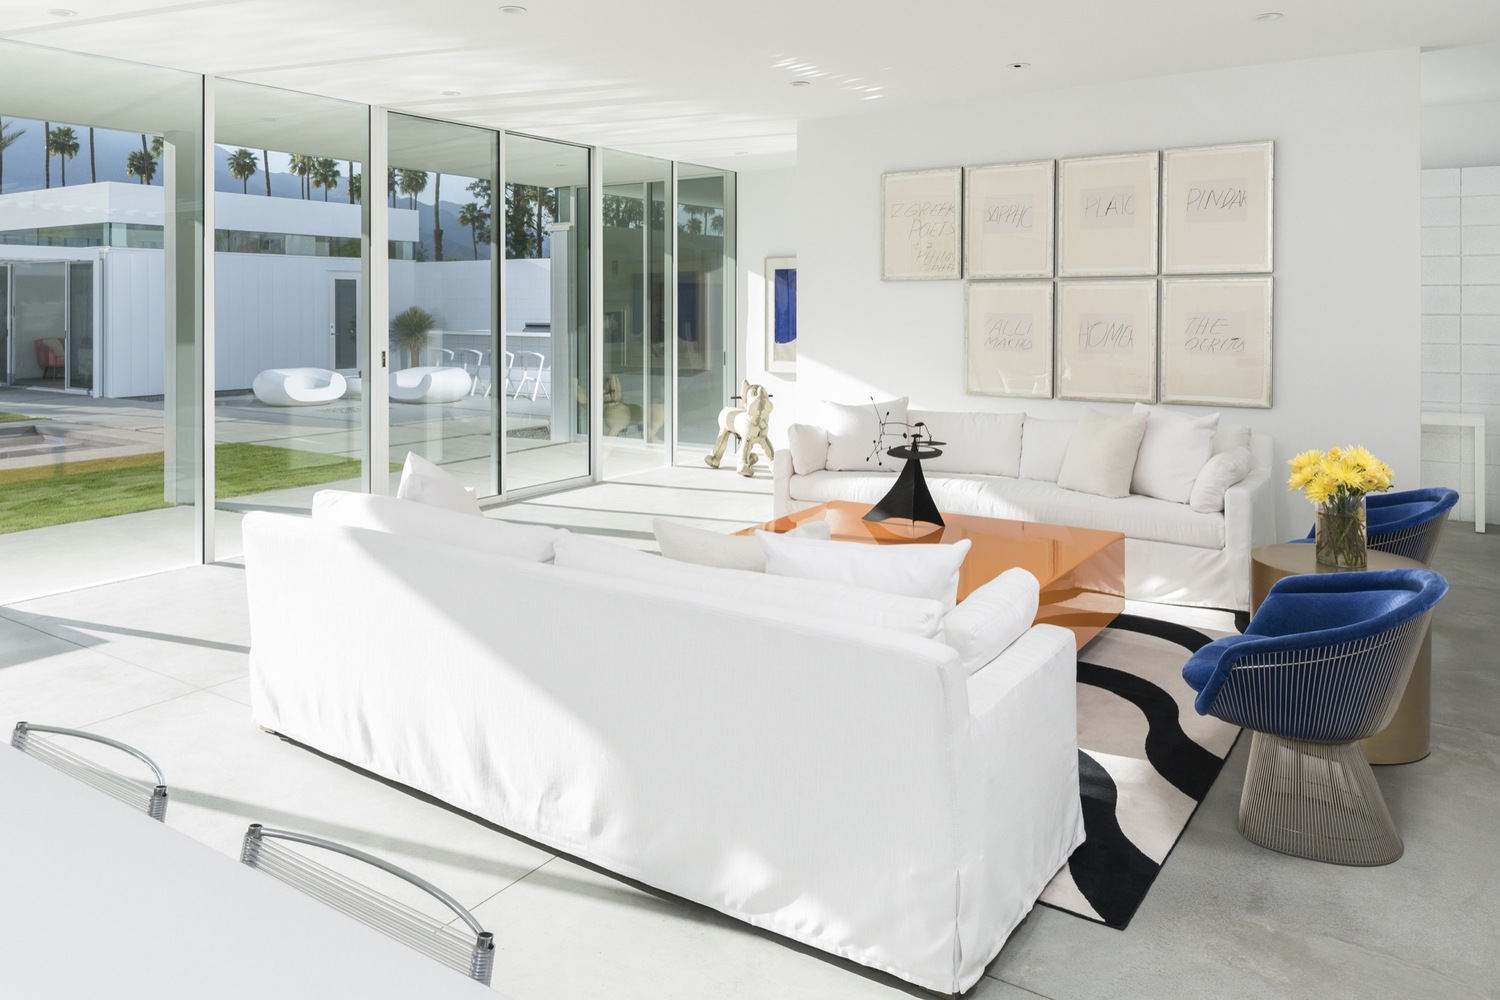 architecture and interior design. Gallery Of Palm Springs Residence / Jim Jennings Architecture + LINEOFFICE Martha Angus Interior Design - 6 And A